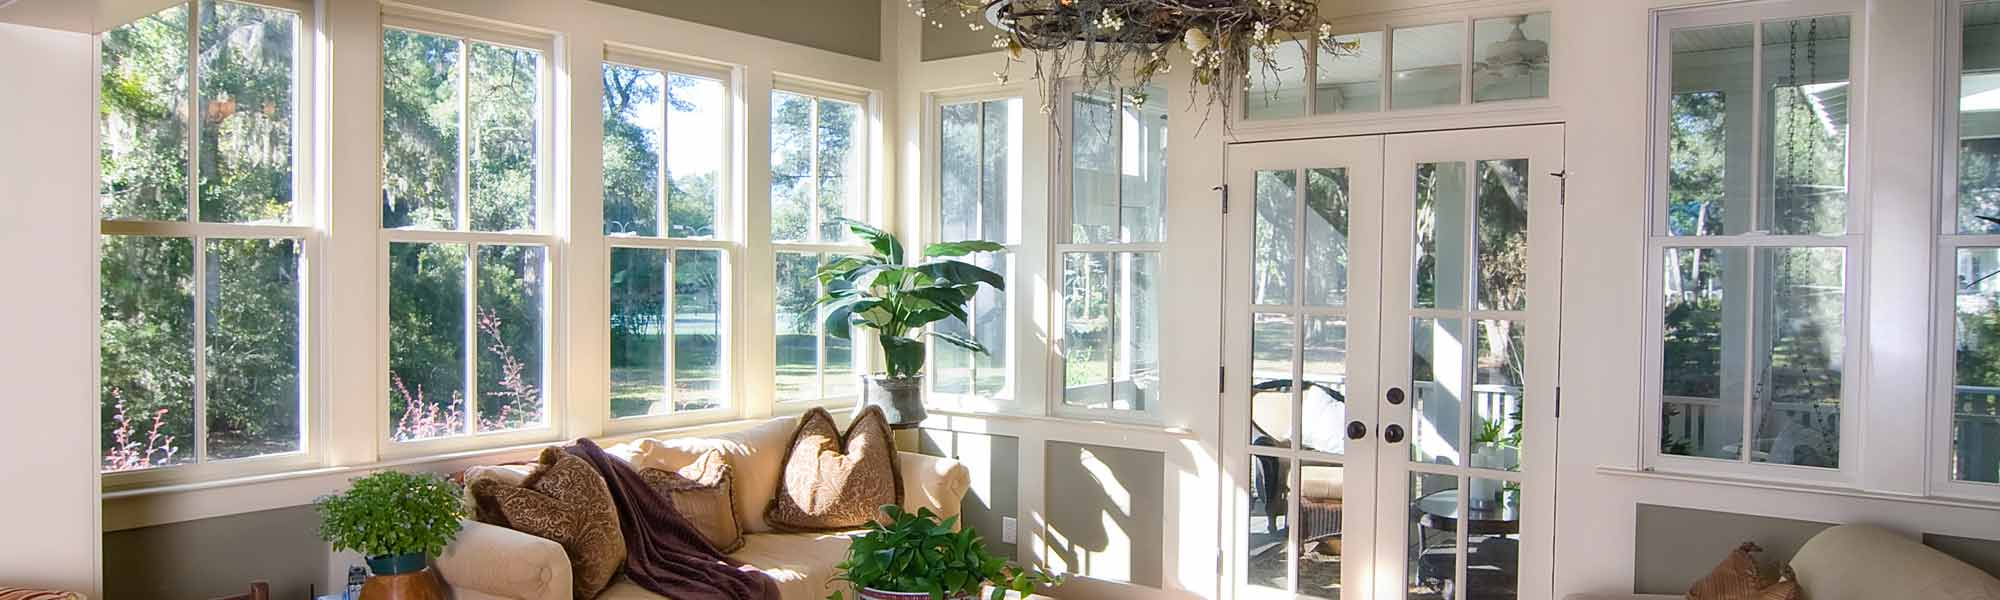 Sunroom banner image